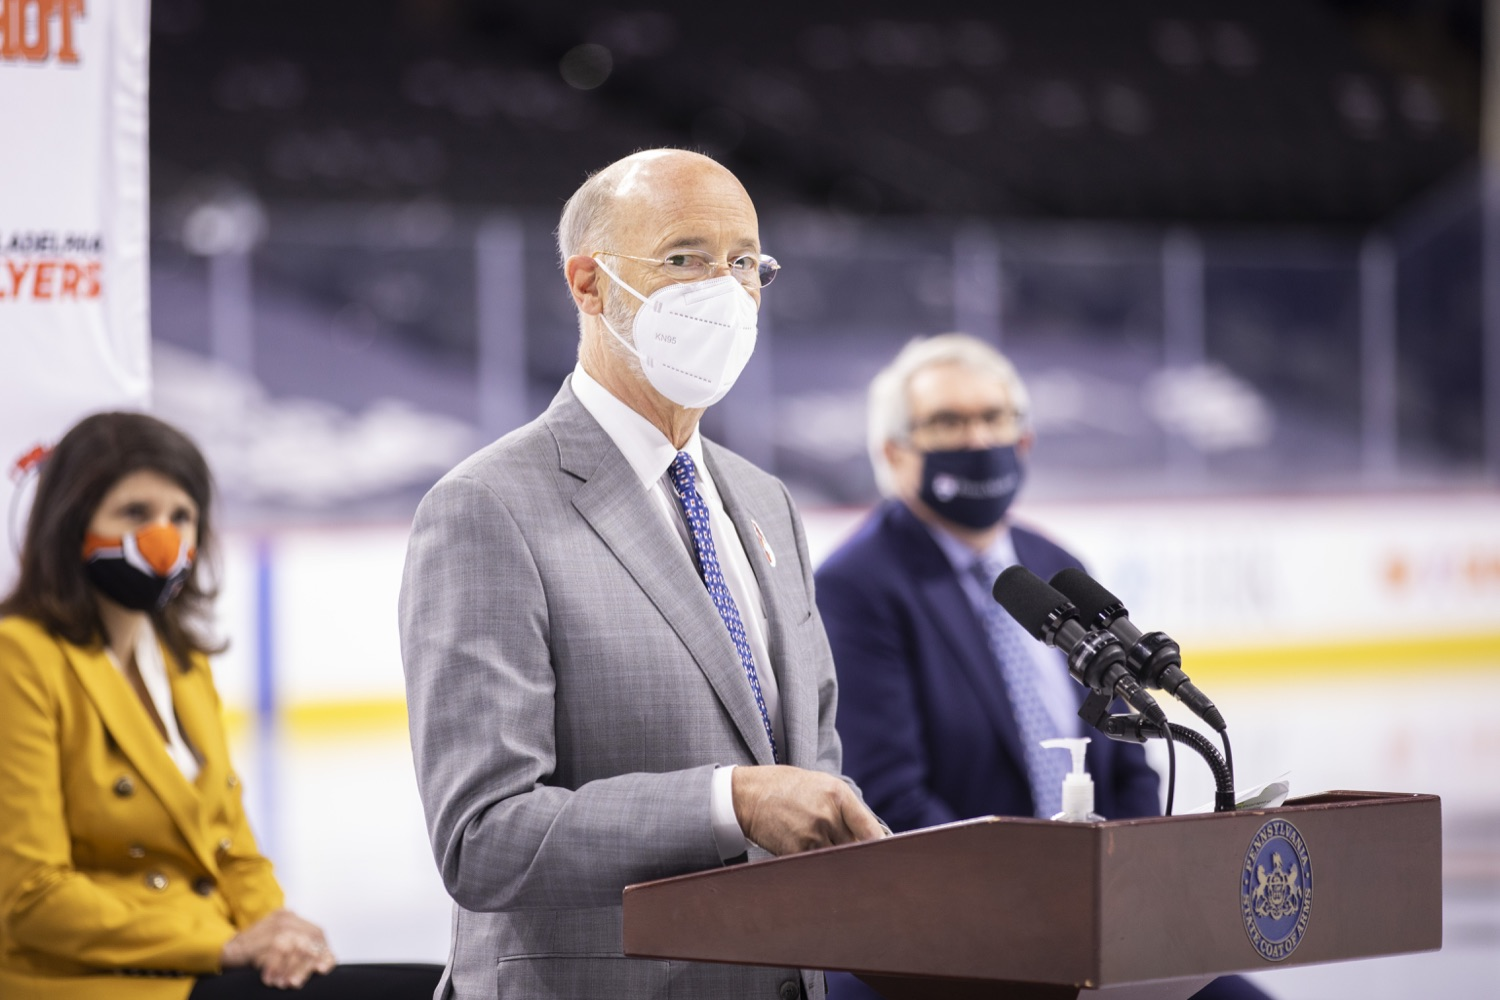 """<a href=""""https://filesource.wostreaming.net/commonwealthofpa/photo/18727_gov_vaccines_dz_018.jpg"""" target=""""_blank"""">⇣Download Photo<br></a>Pennsylvania Governor Tom Wolf speaking with the press.   Governor Tom Wolf today visited the Philadelphia Flyers organization at the Wells Fargo Center in Philadelphia to discuss COVID-19 vaccine efforts in Pennsylvania. The Flyers recently launched a comprehensive COVID-19 vaccine campaign, Take Your Shot, encouraging Pennsylvanians to get vaccinated.  Philadelphia, PA  MAY 3, 2021"""